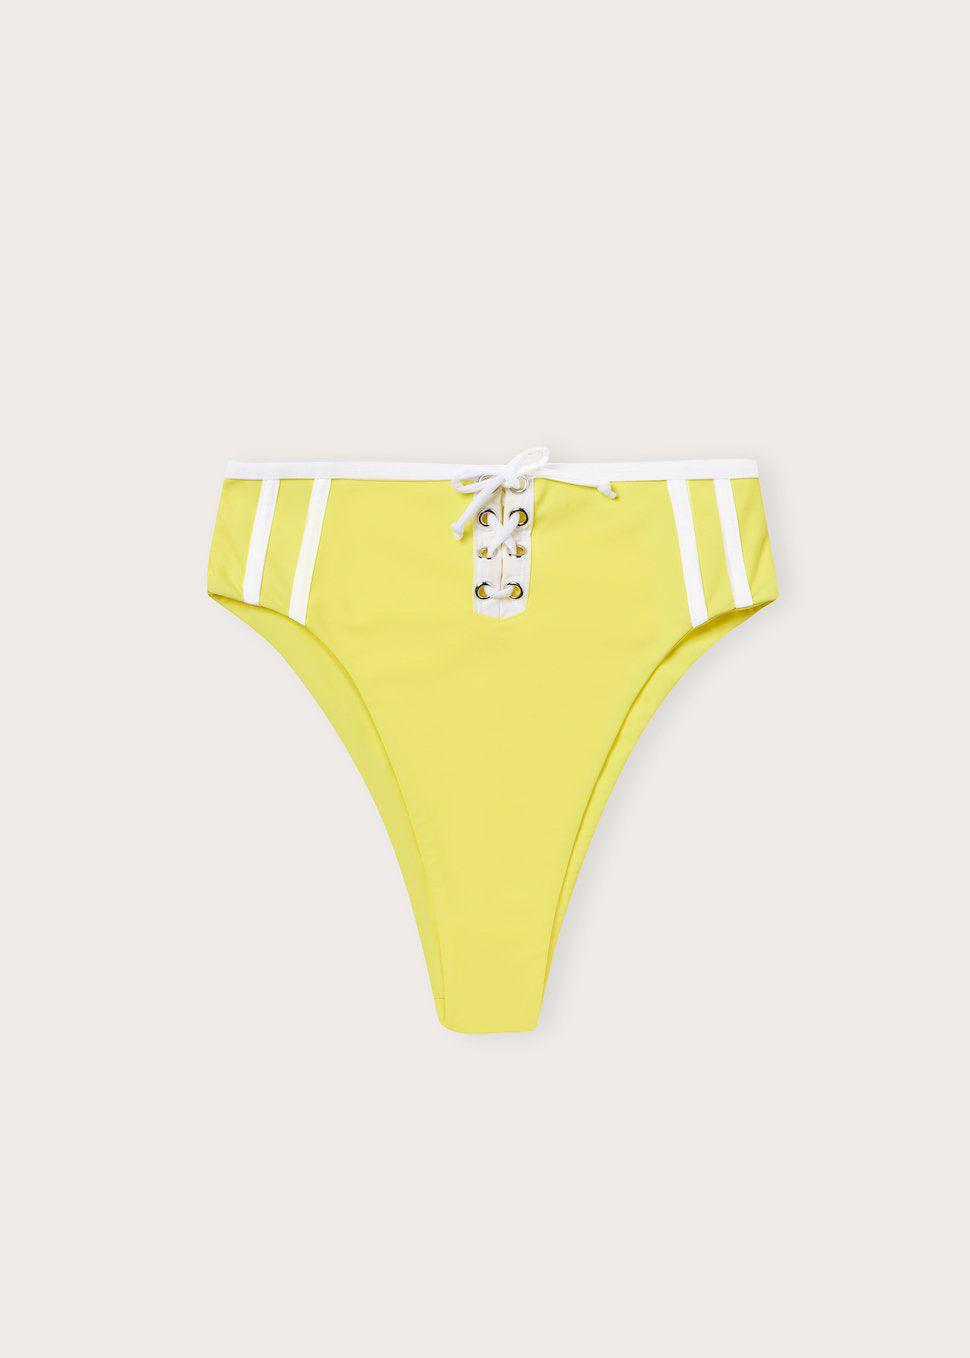 Bondi Swim Bottom - Lemon - cara cara